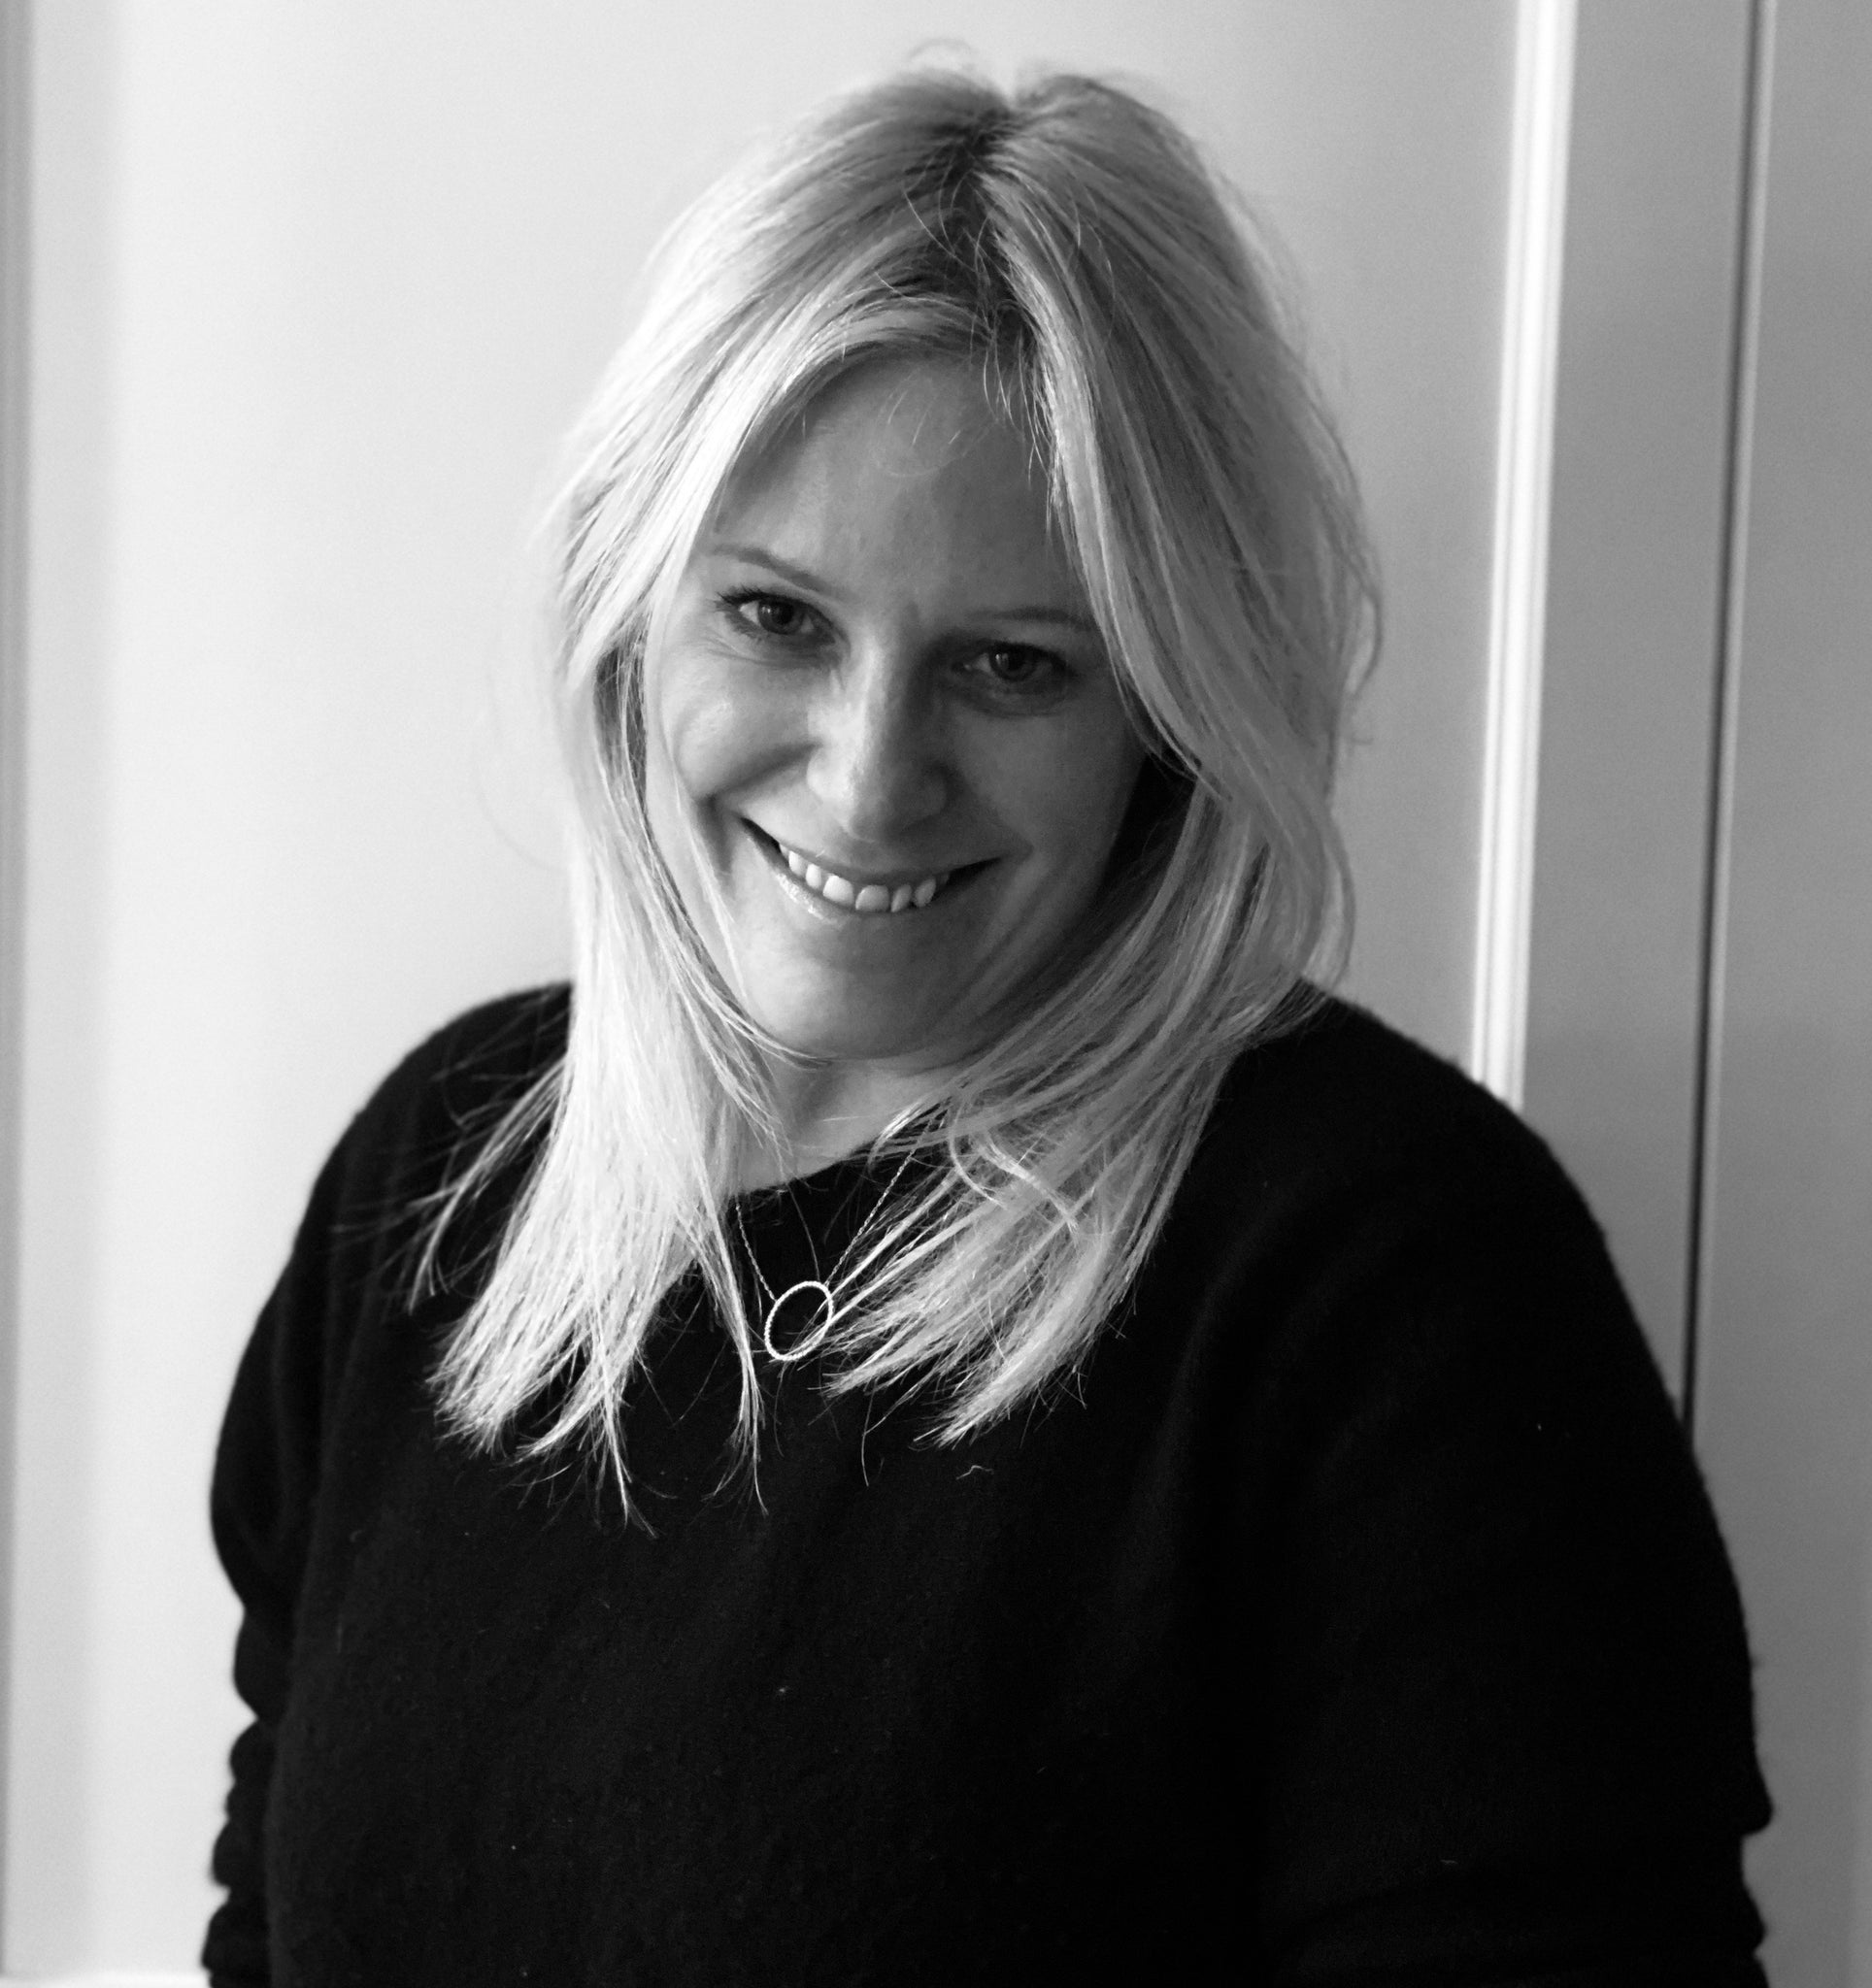 ASOS Womenswear Buyer, Lori Grossman Joins The Coco Consultancy